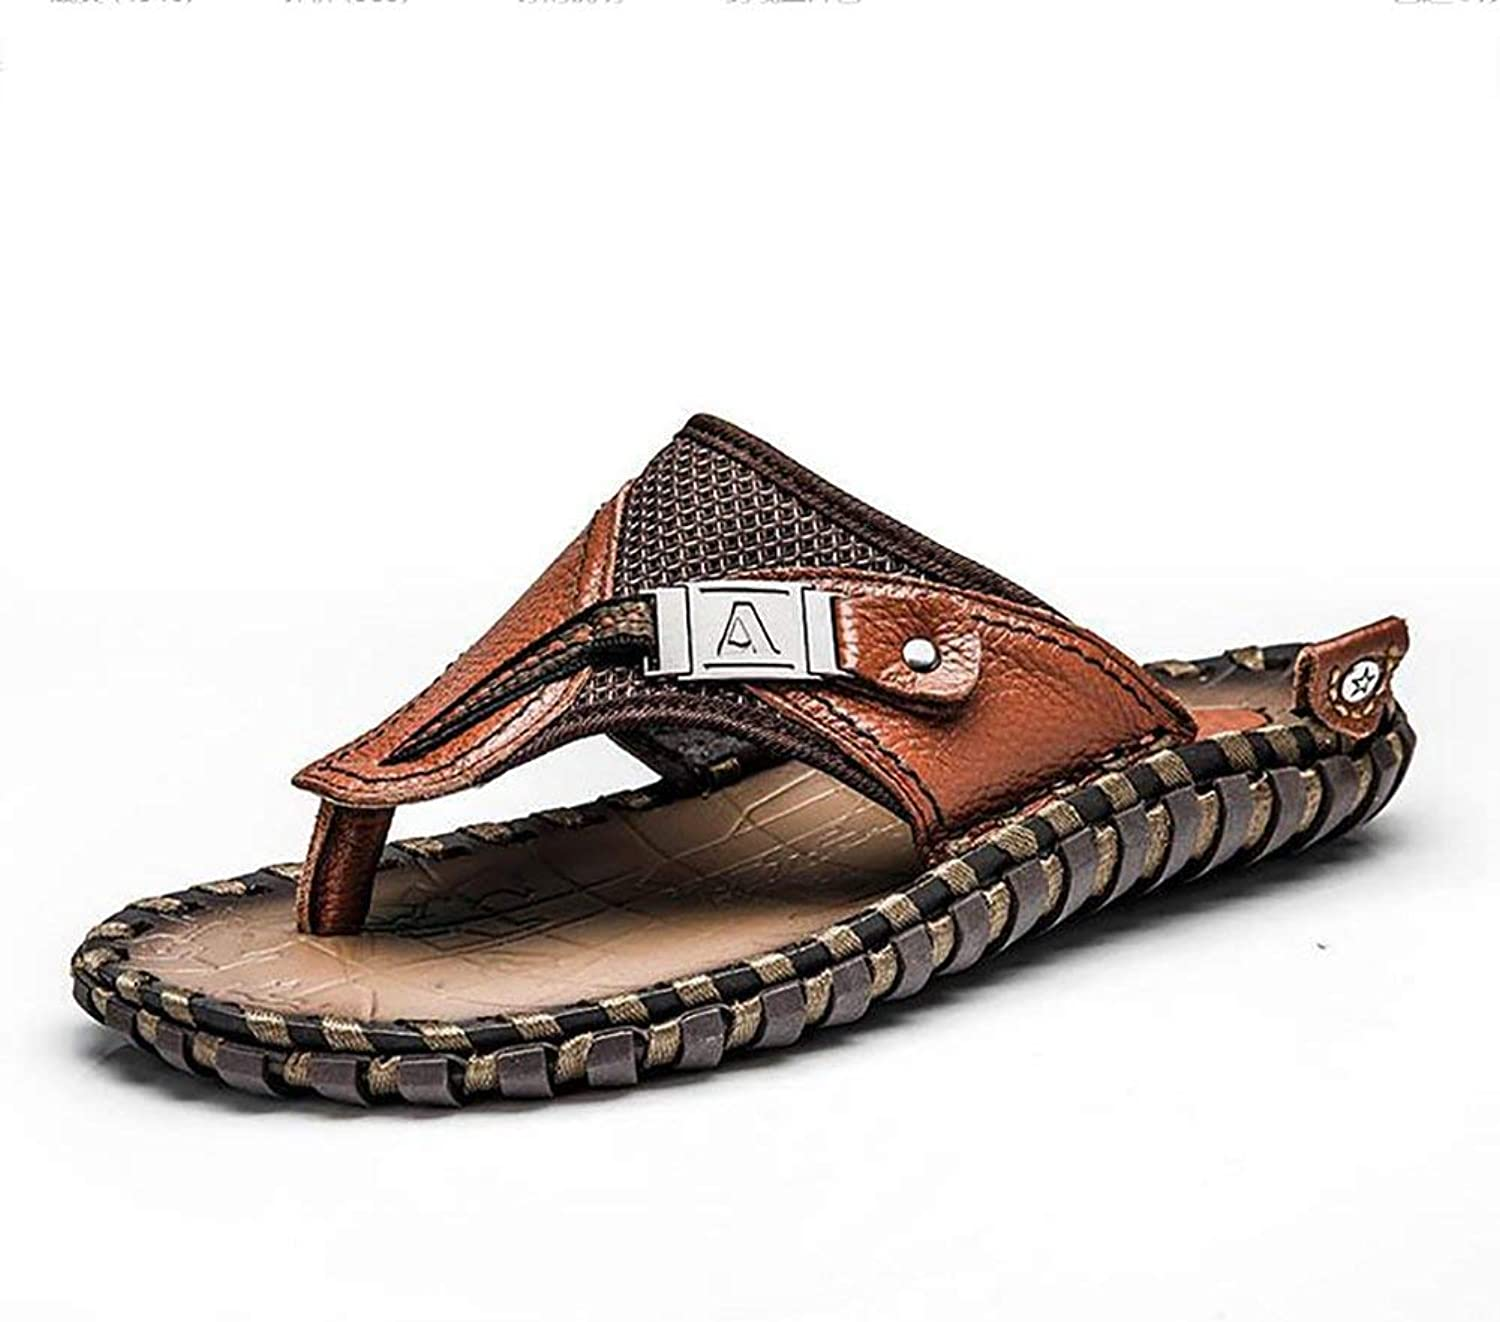 Oudan Men's Flip Flops Leather Sandals Handmade Summer Beach Large Size Cozy Slipper, Brown, 46 (color   Brown, Size   38)